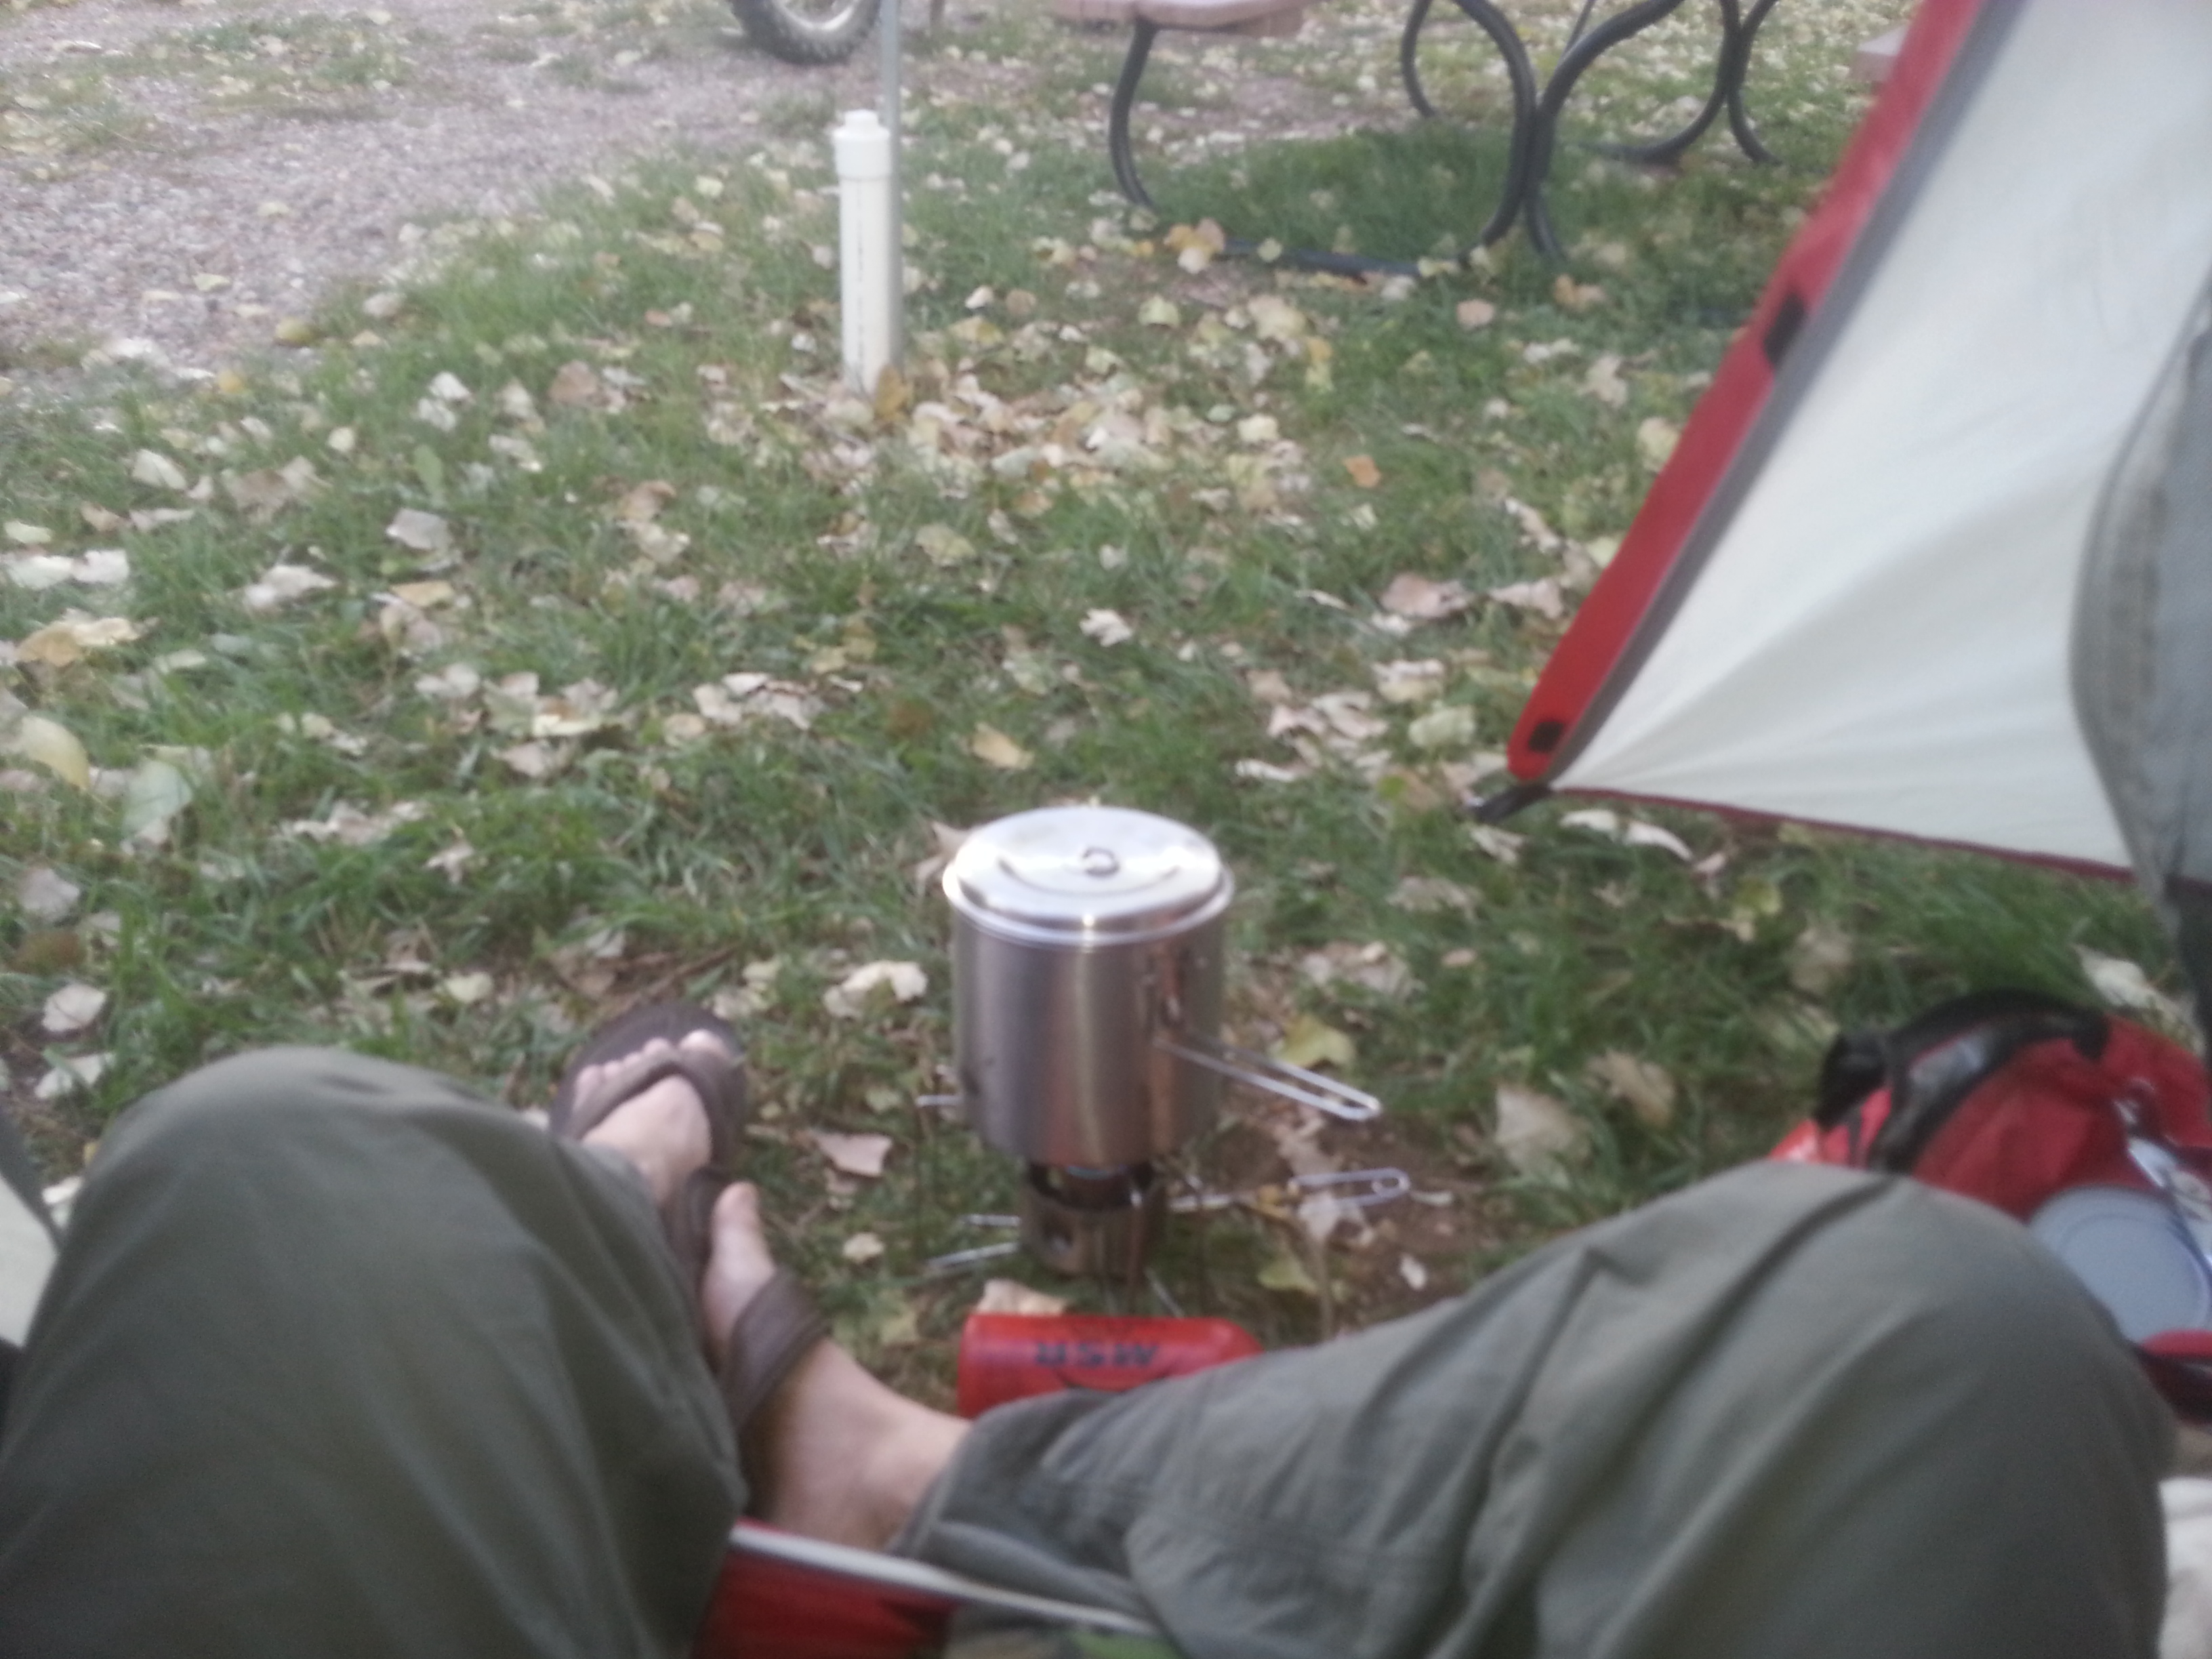 cooking in my tent's vestibule b/c the wind kept putting out the flame